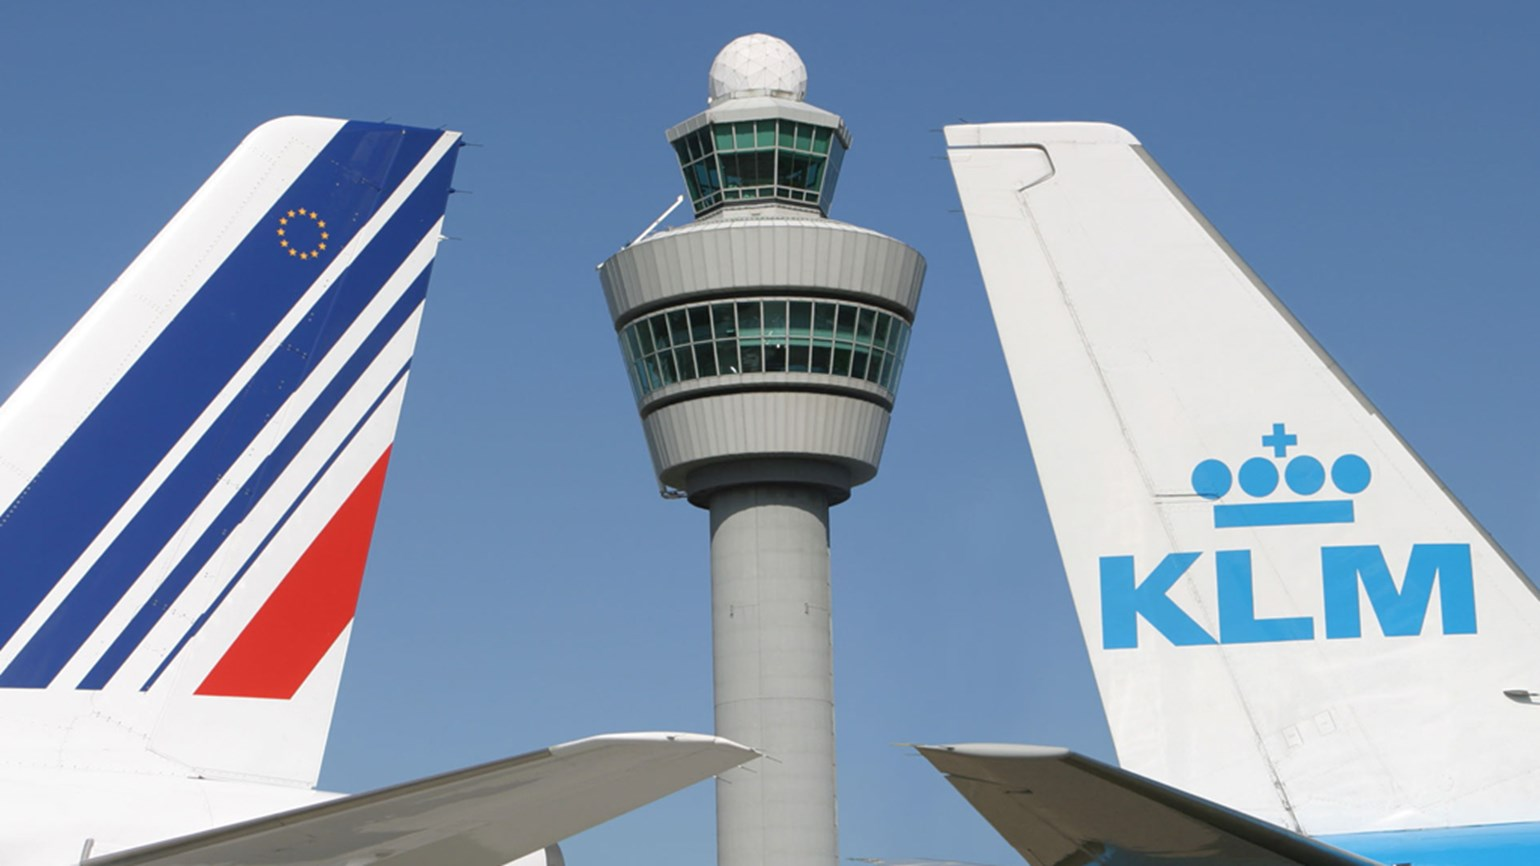 af klm tail fins air france